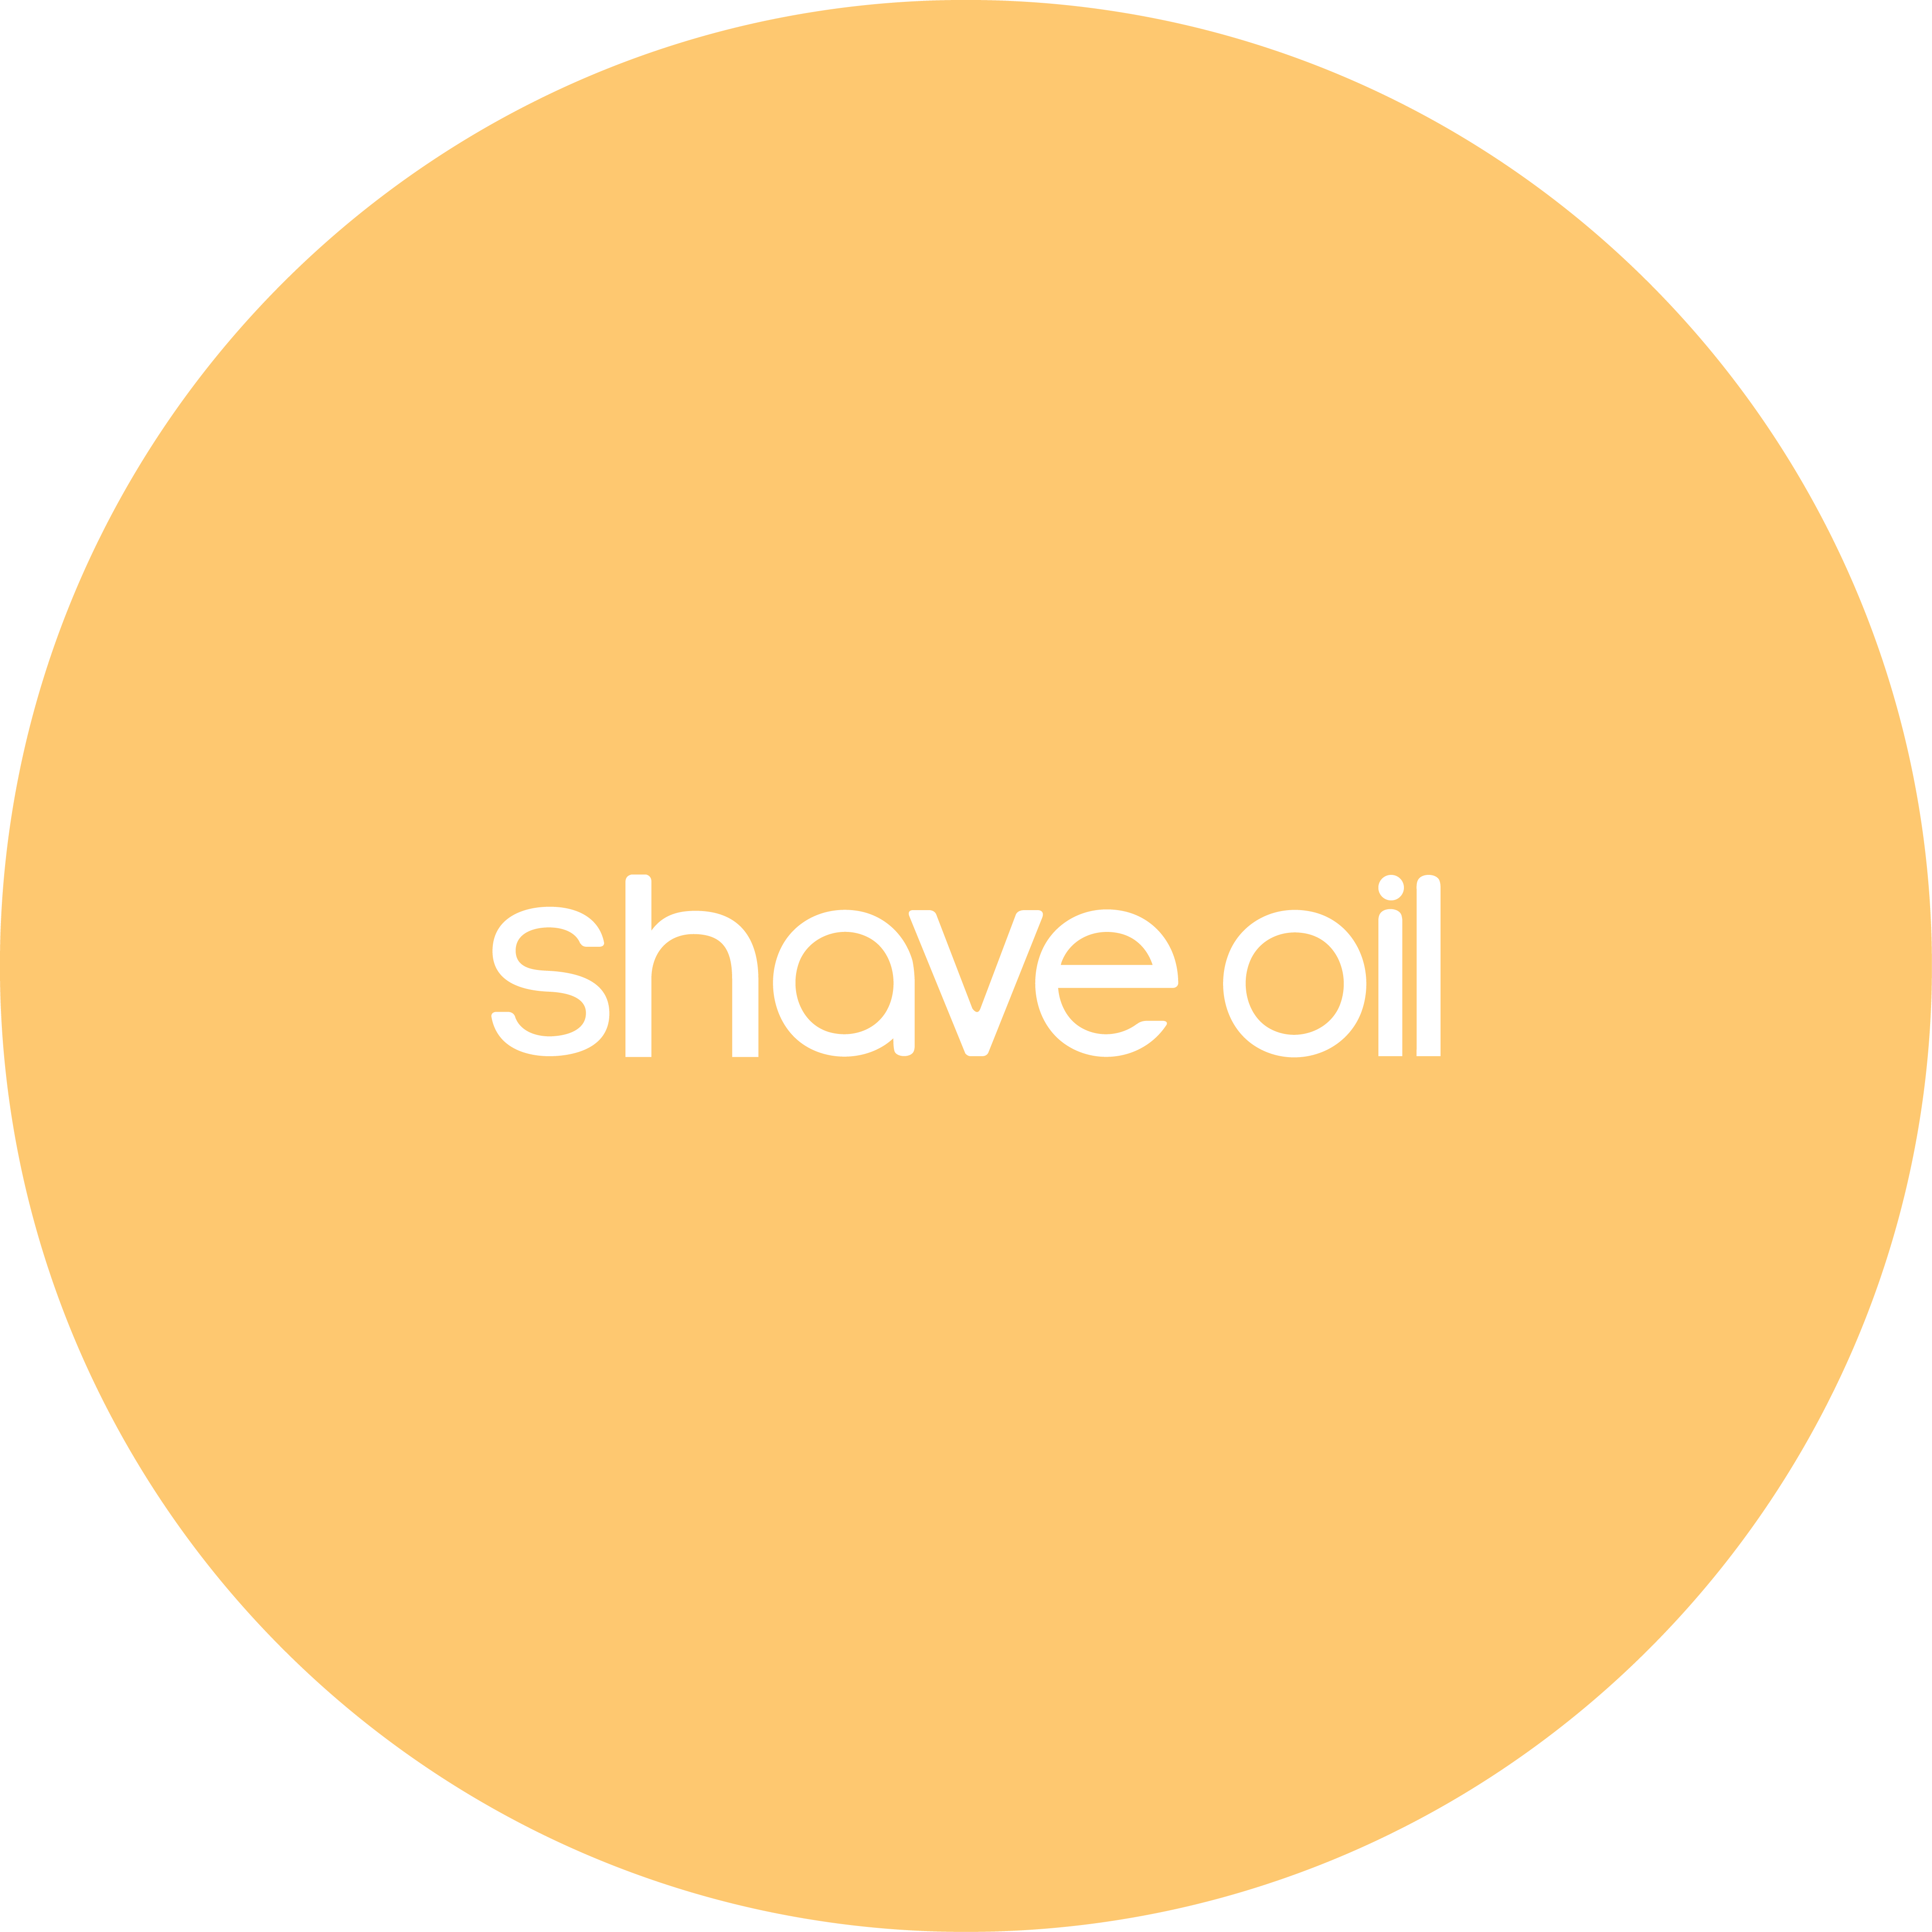 Shop organic all natural shave oils.